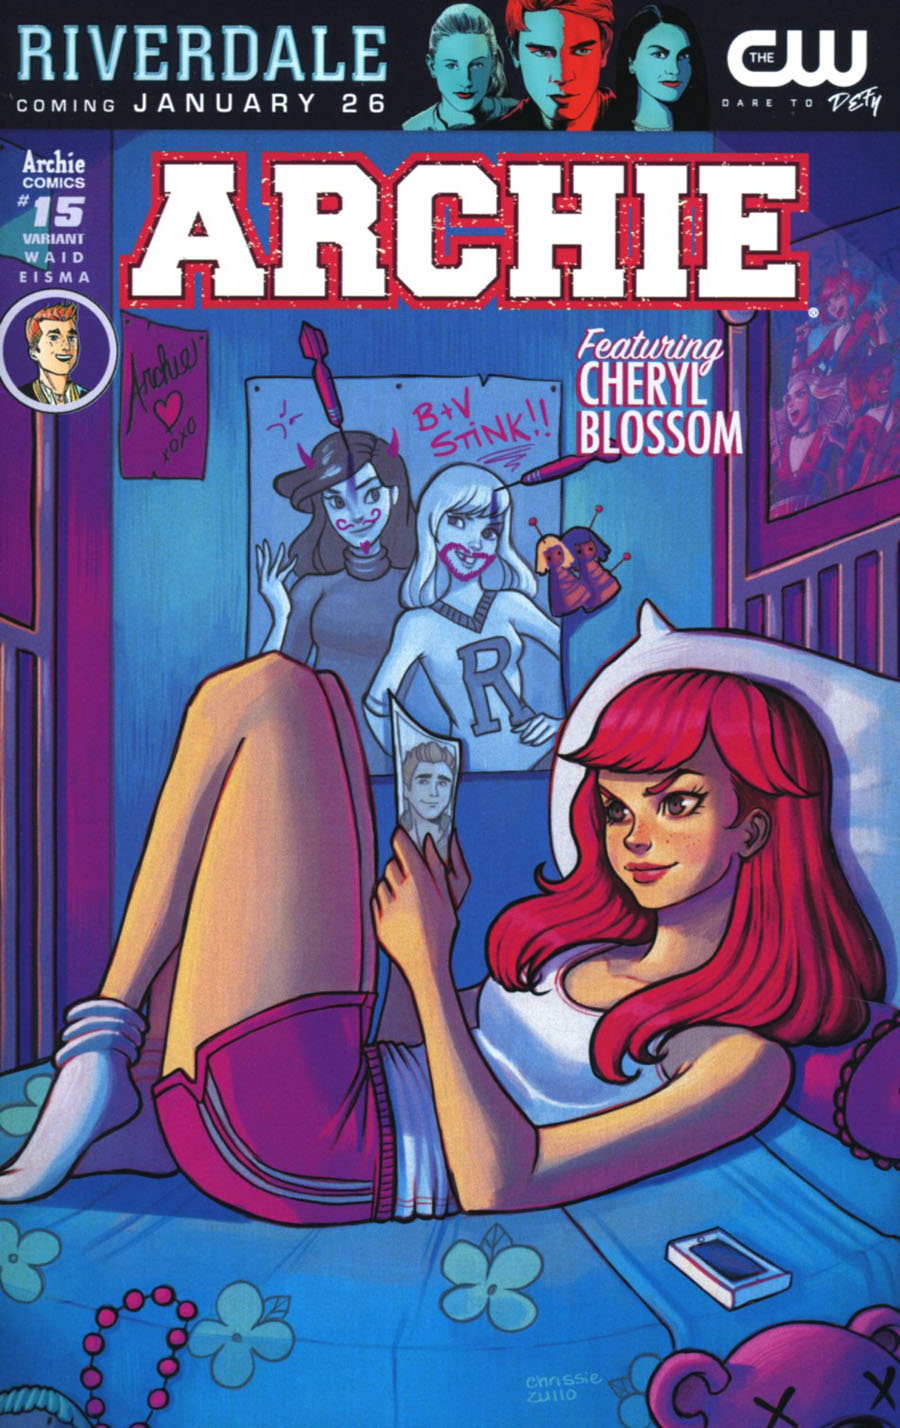 Archie Vol 2 #15 Cover C Variant Chrissie Zullo Cover